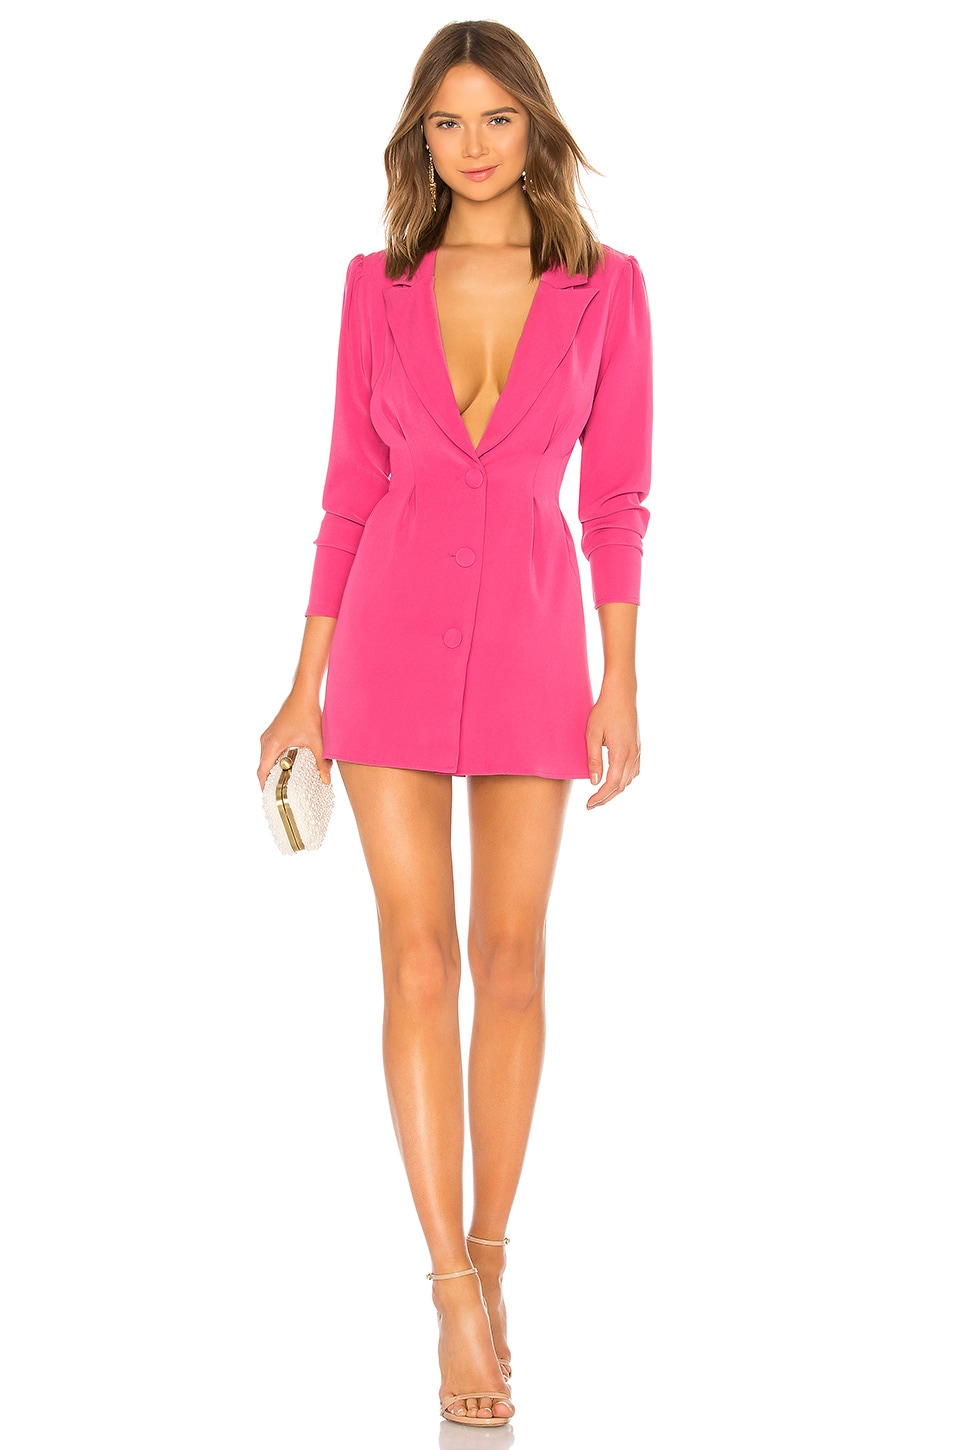 Lovers + Friends City Blazer Dress in Magenta Pink